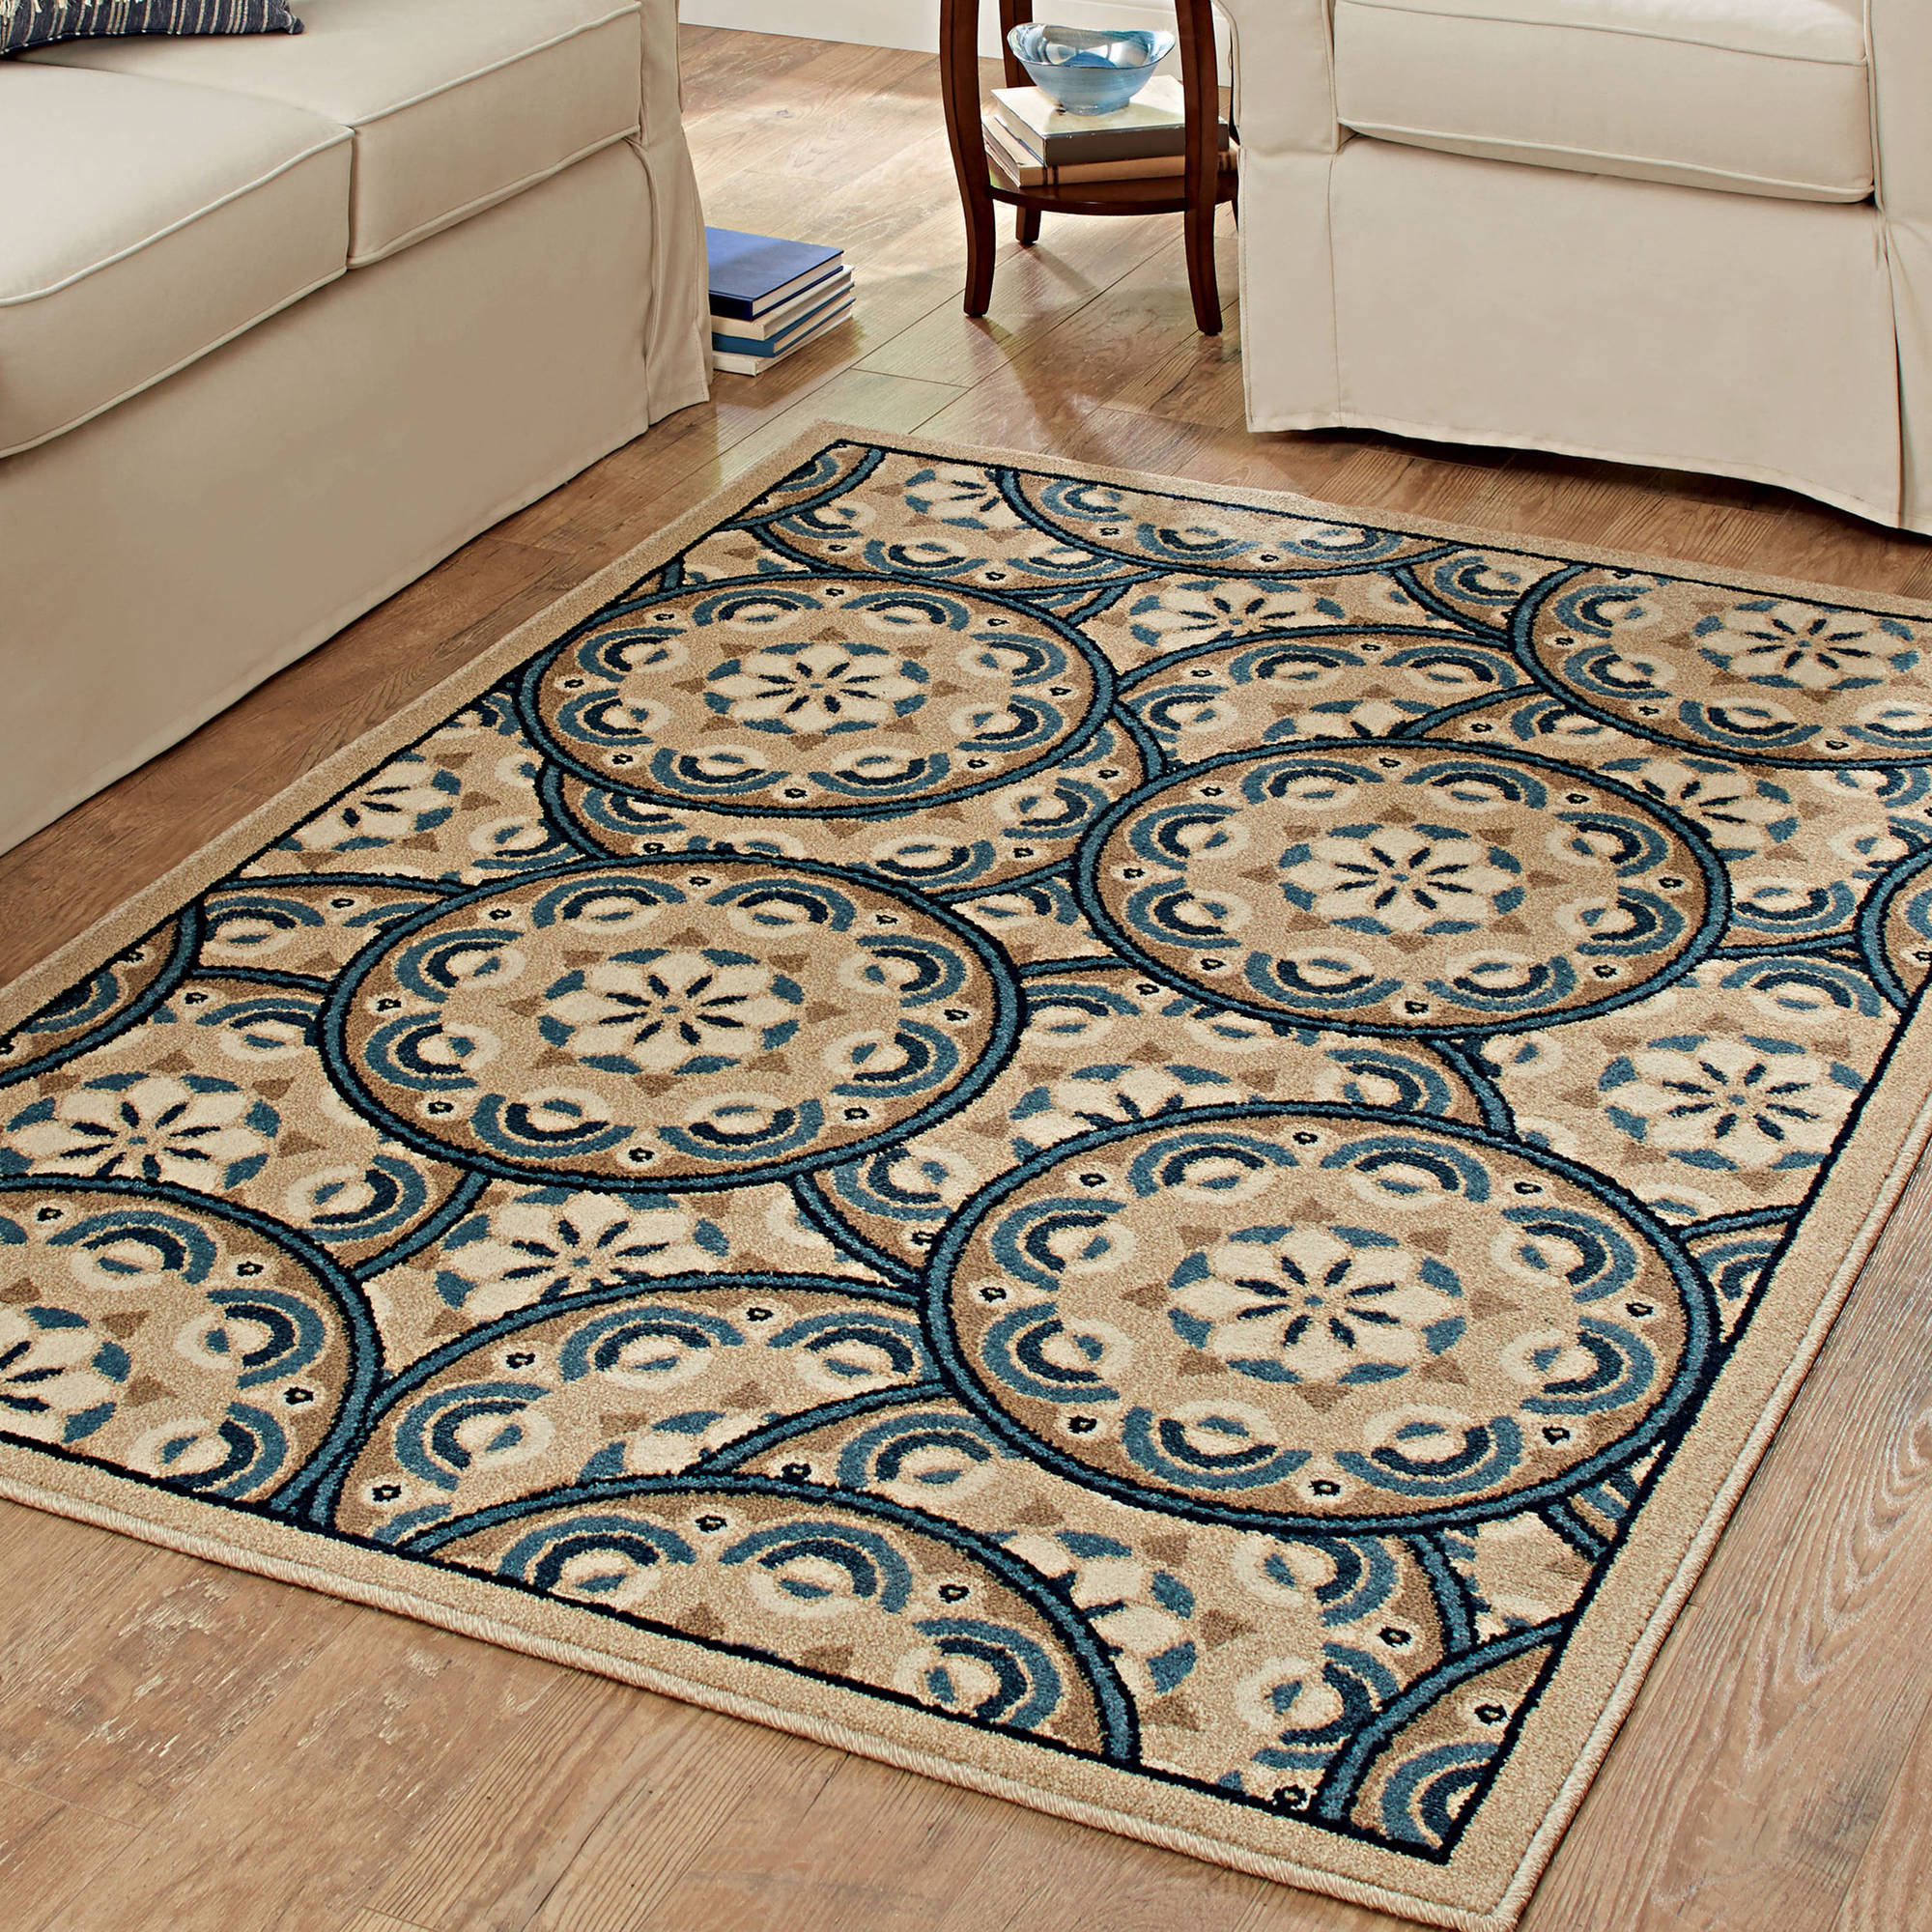 Better Homes and Gardens Blue Tokens Driftwood Area Rug or Runner